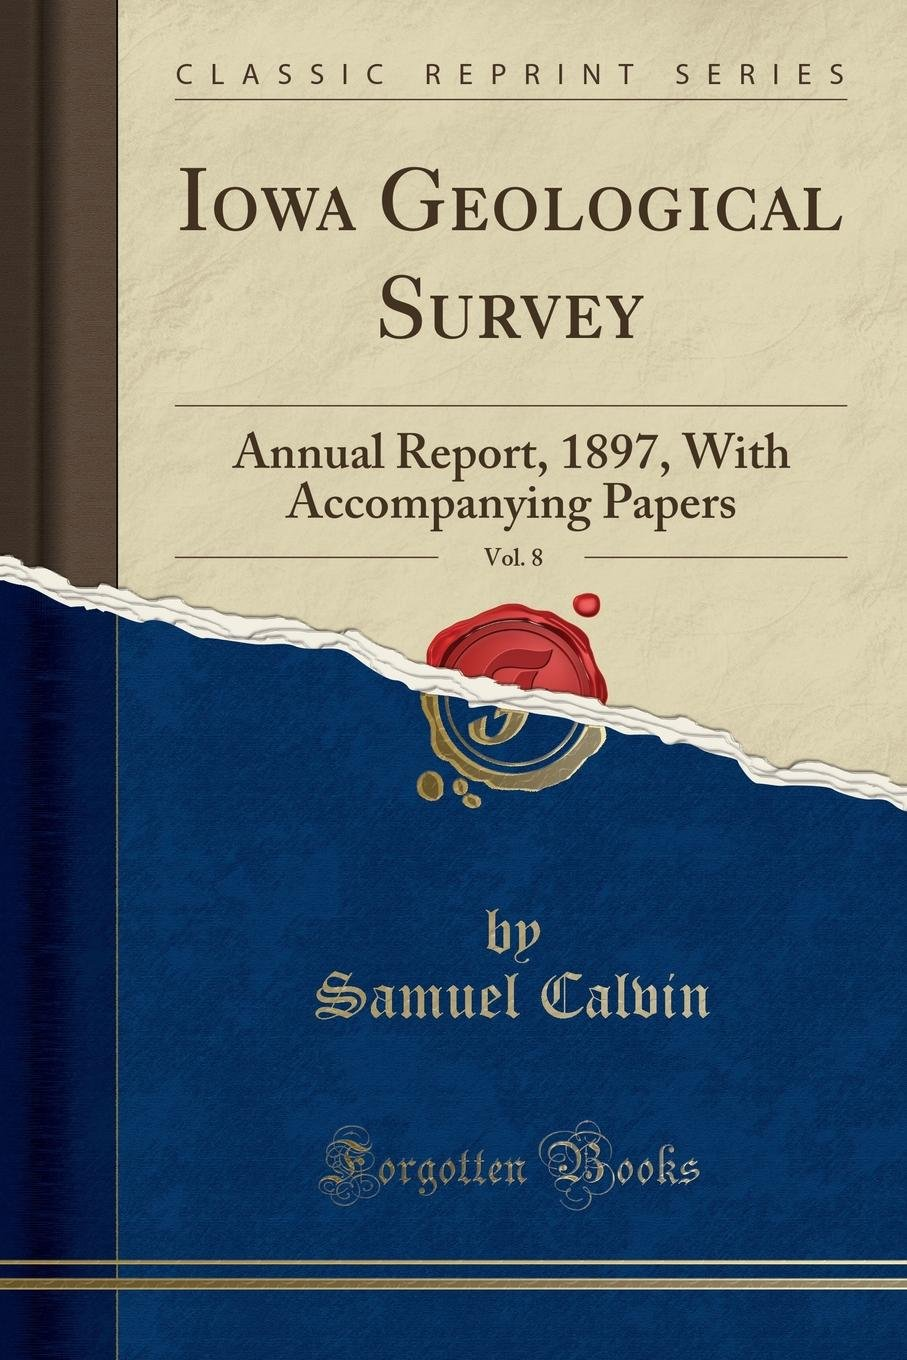 Iowa Geological Survey, Vol. 8: Annual Report, 1897, With Accompanying Papers (Classic Reprint) pdf